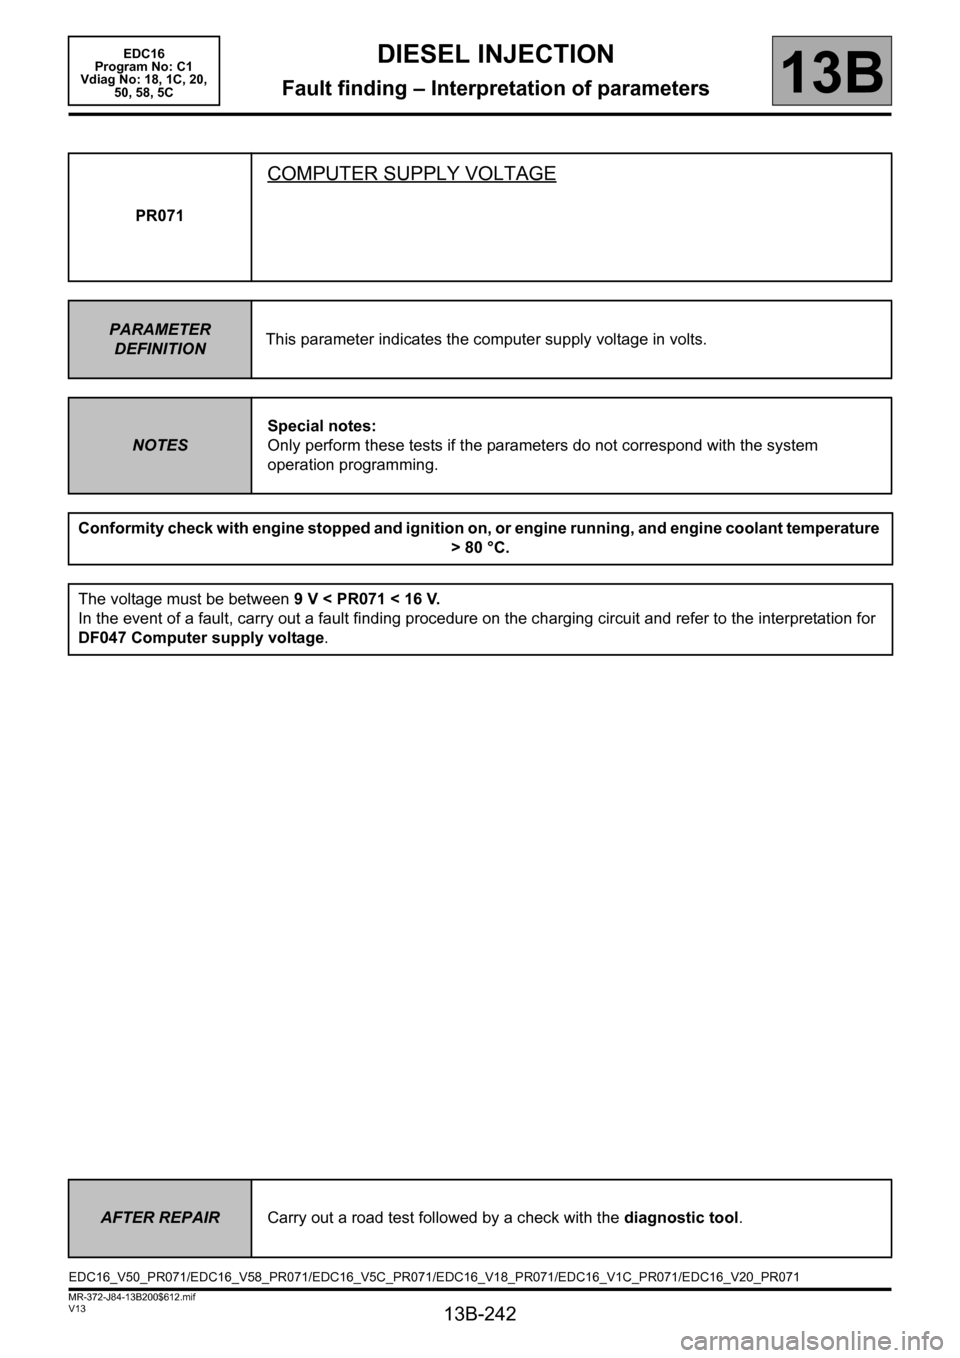 RENAULT SCENIC 2011 J95 / 3.G Engine And Peripherals EDC16 Workshop Manual, Page 242